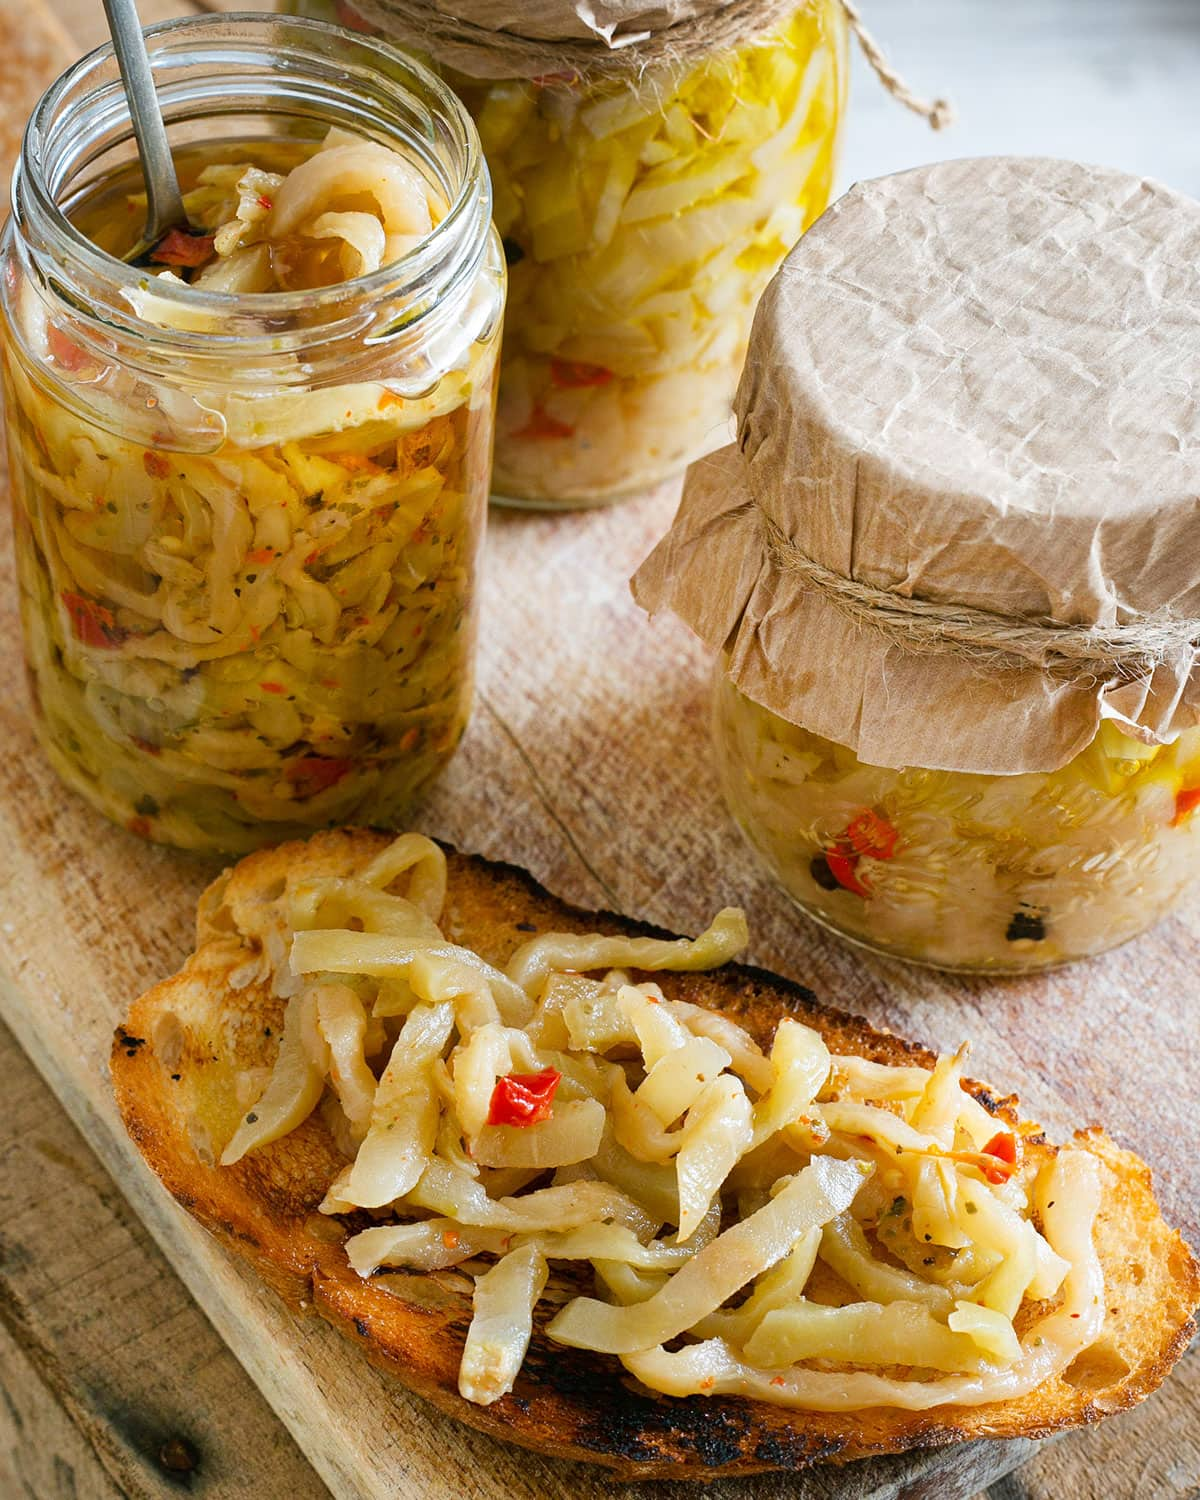 Italian pickled eggplant in jars and served on a bruschetta.